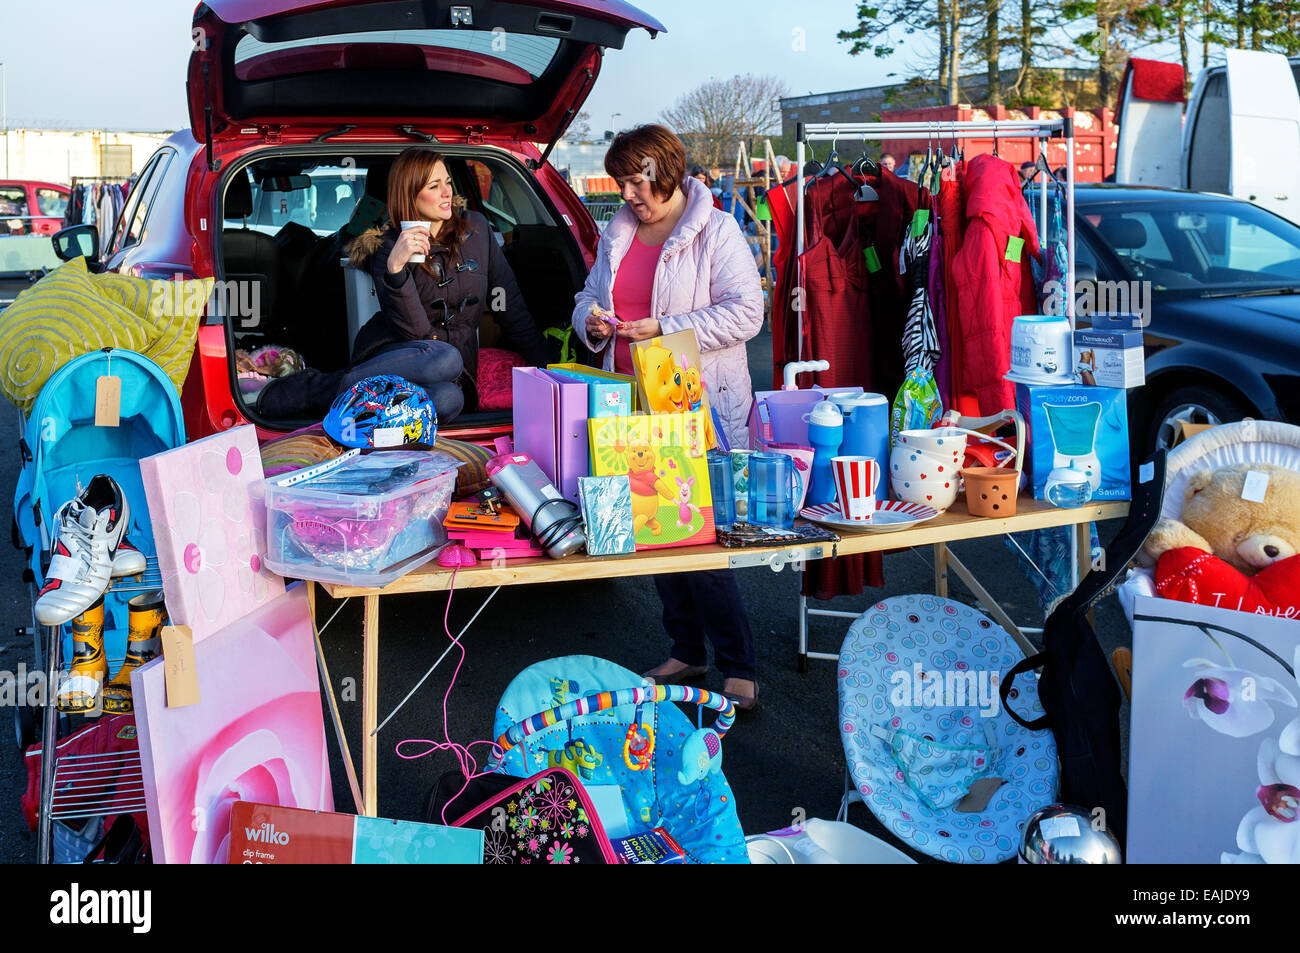 Two women running a stall at the car boot sale, Ayr, Ayrshire, Scotland, UK - Stock Image